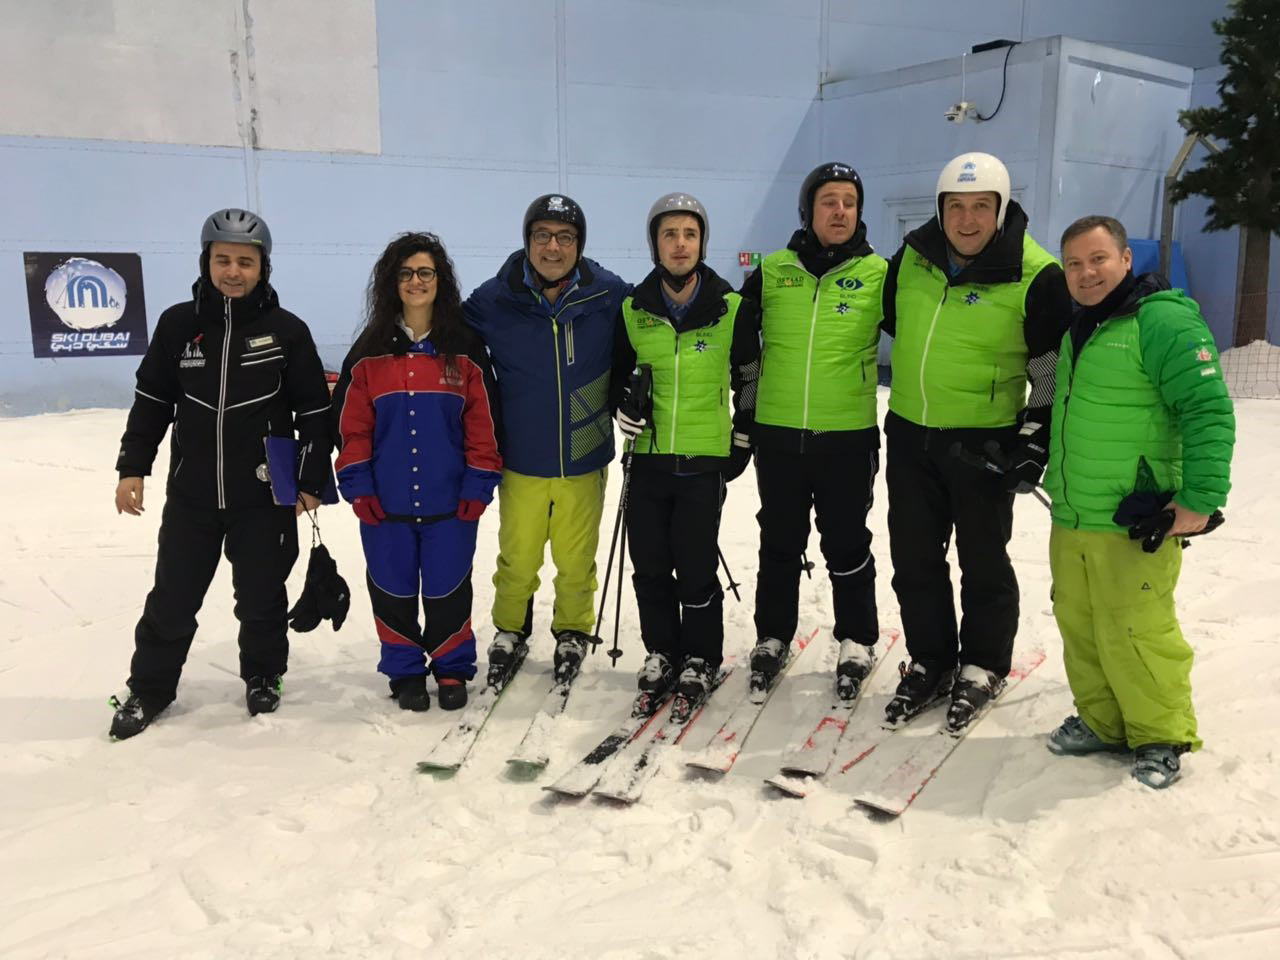 The team of blind skiers and their guides at Ski Dubai